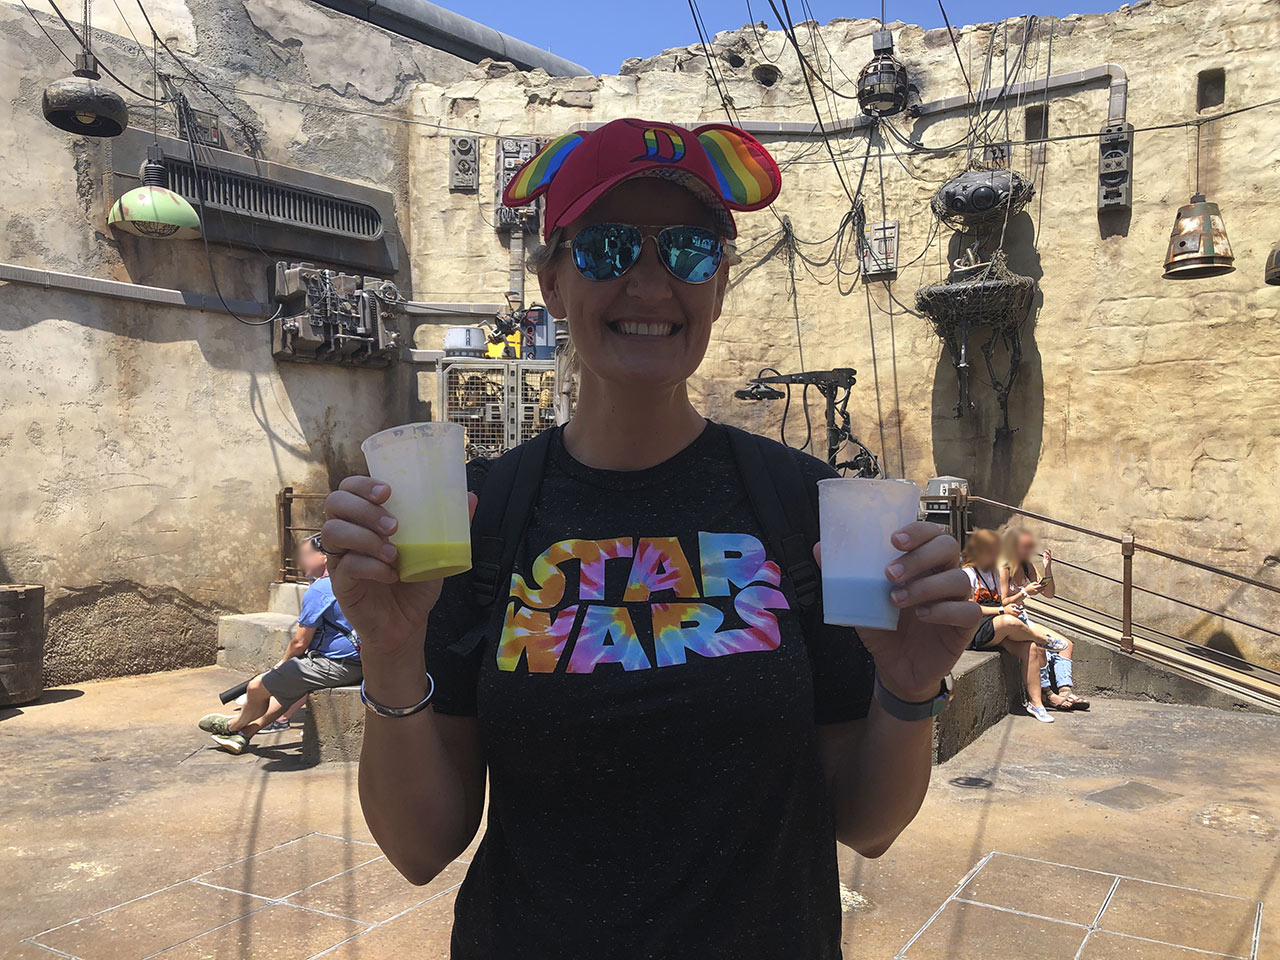 Star Wars fan at Star Wars: Galaxy's Edge